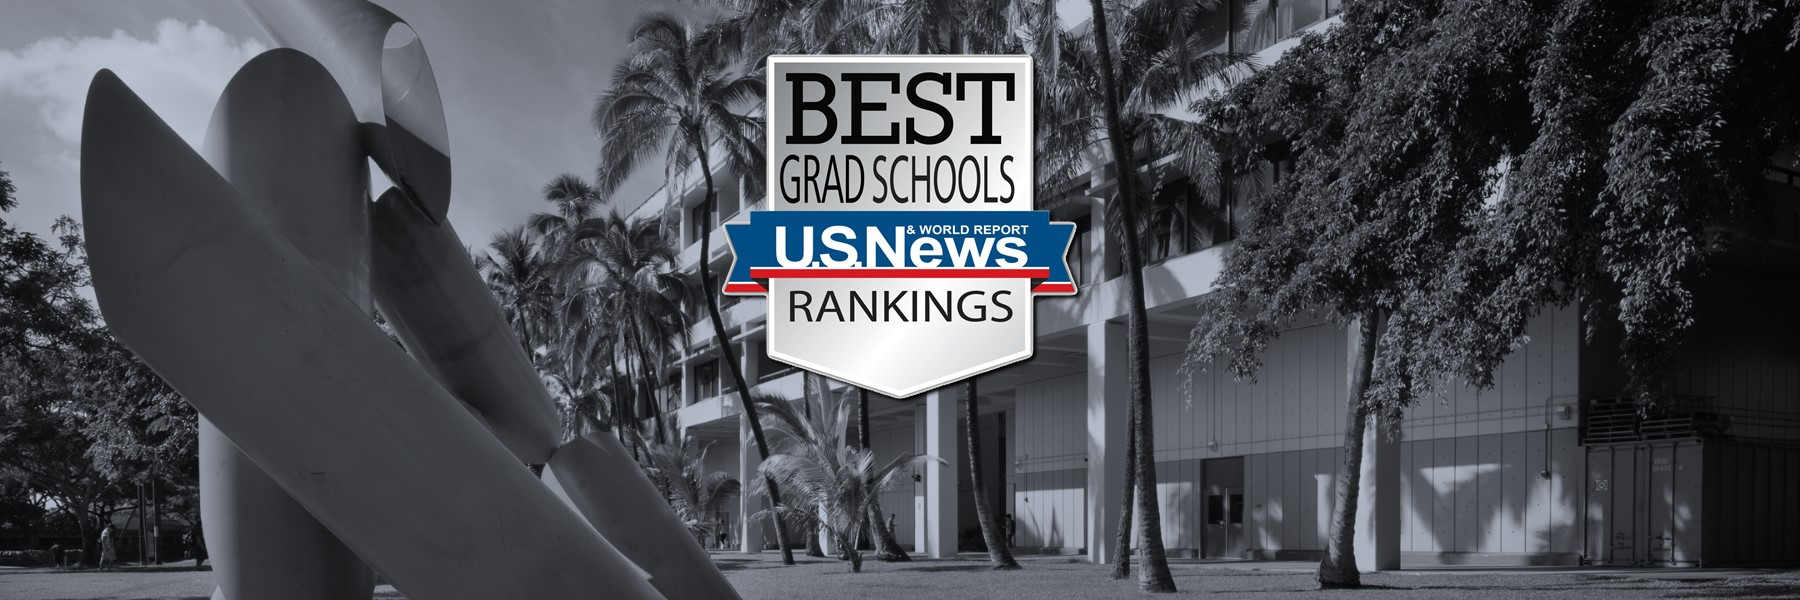 US News And World Report Rankings Badge Over An Unsaturated Photo Of Holmes Hall.